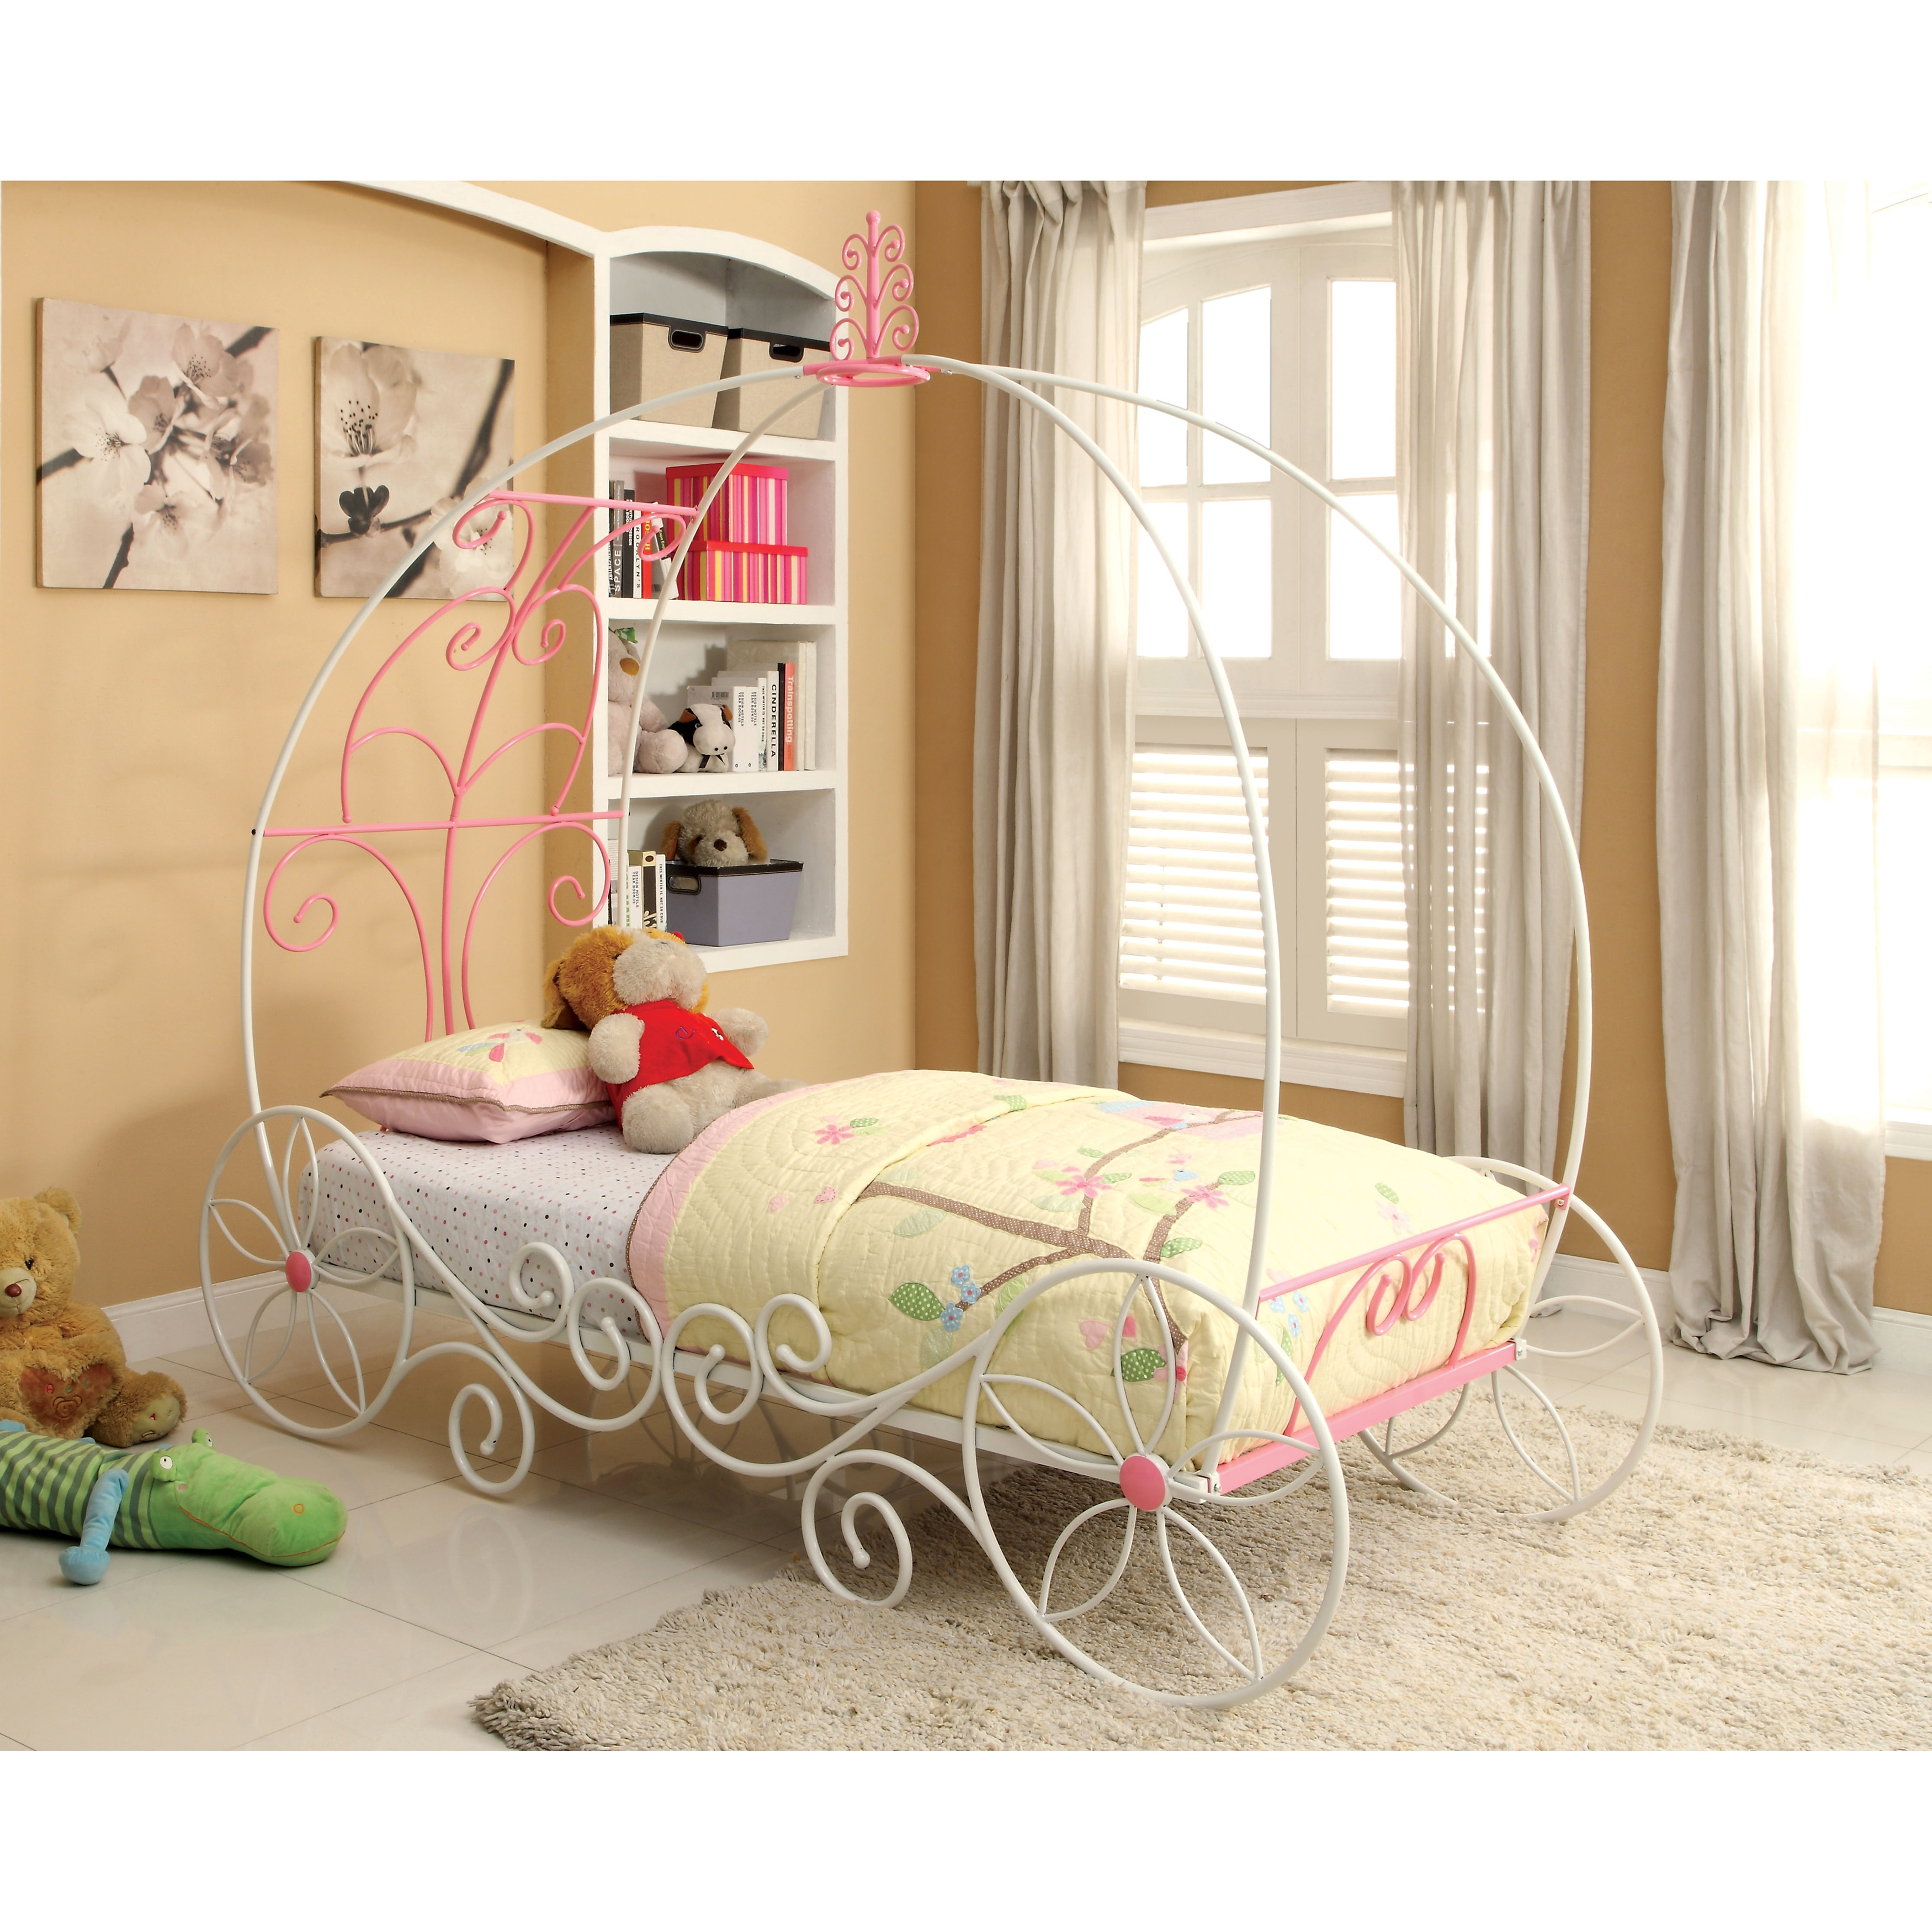 Furniture of America Princess Fantasy Carriage-inspired Metal Bed - Free  Shipping Today - Overstock.com - 16980242